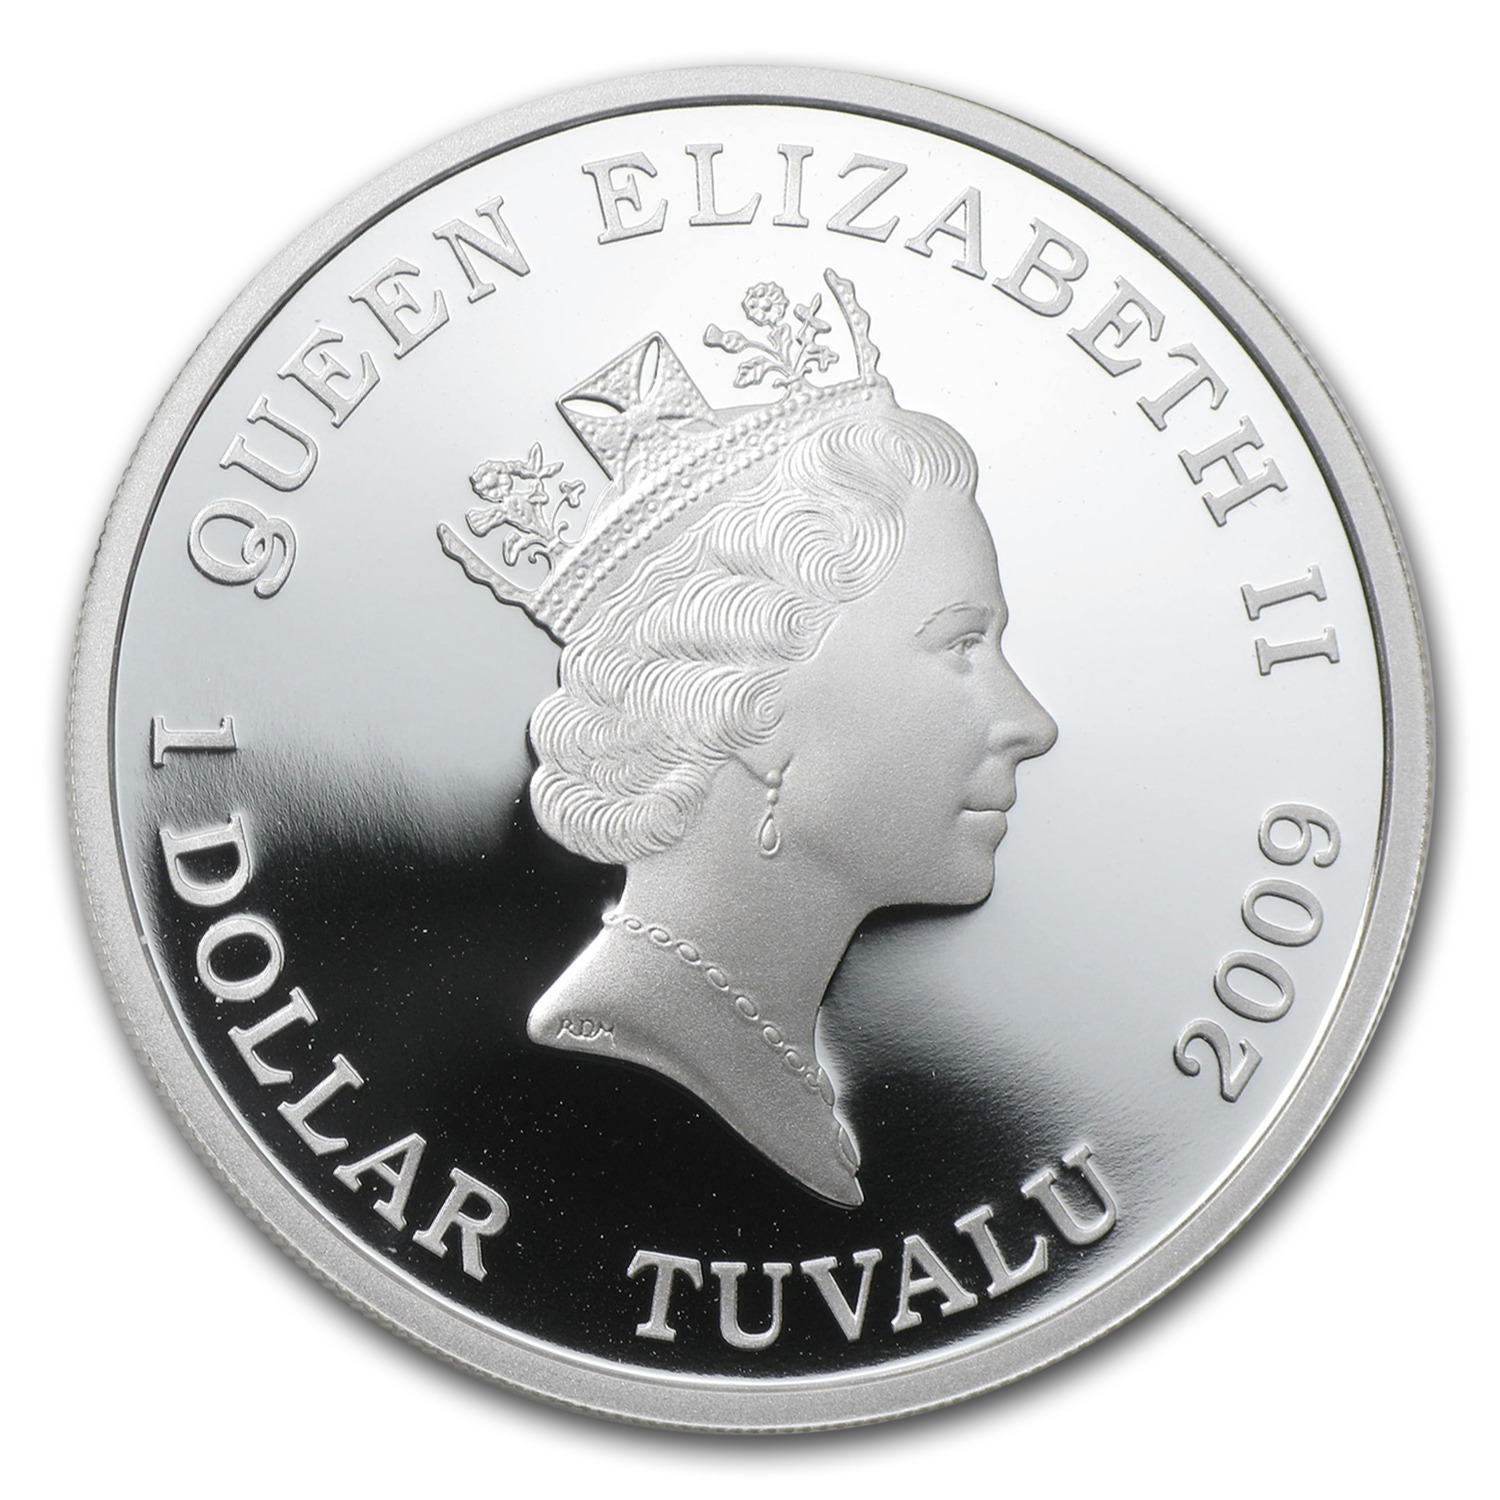 2009 Tuvalu 1 oz Silver Barbie 50th Anniversary Proof